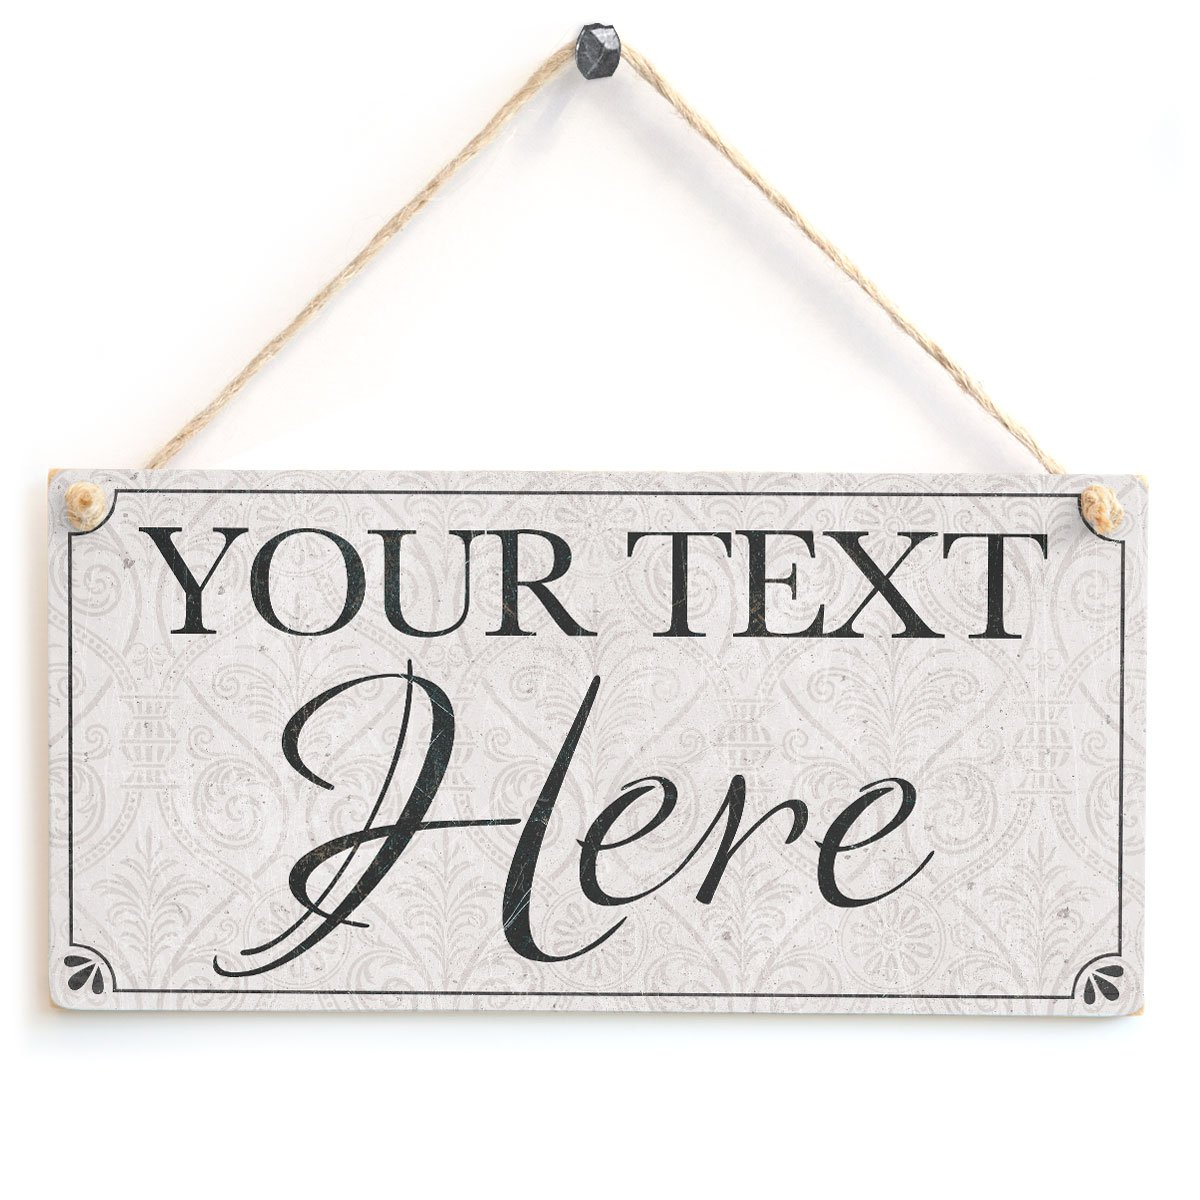 Anita's Country Crafts Your Text Here (Classy Traditional Design) - Custom Personalised Wooden Sign Gift Anita's Country Crafts